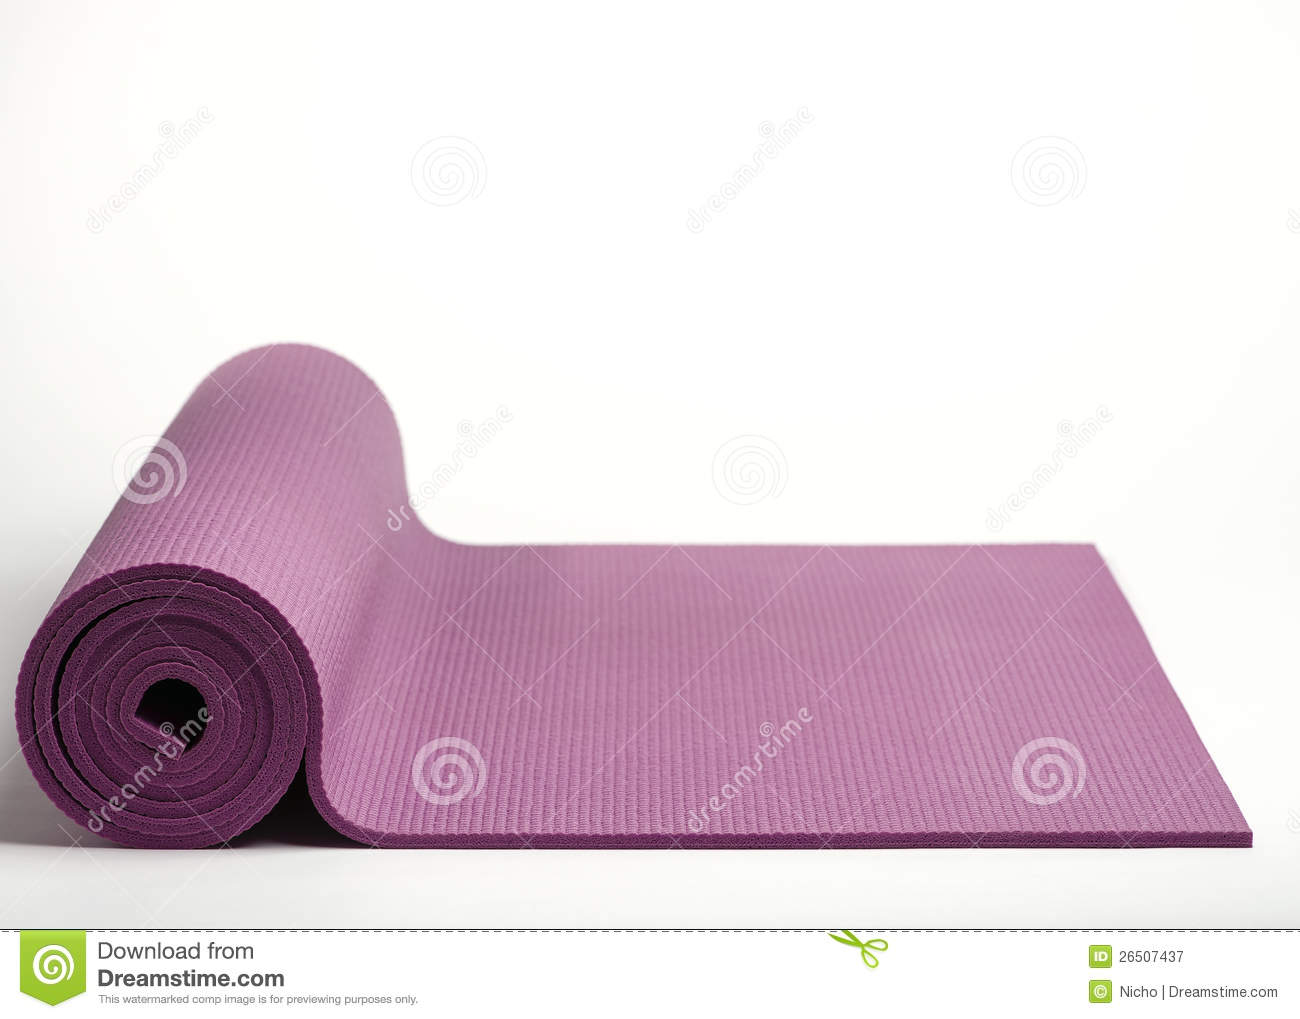 Couvre-tapis d exercice.